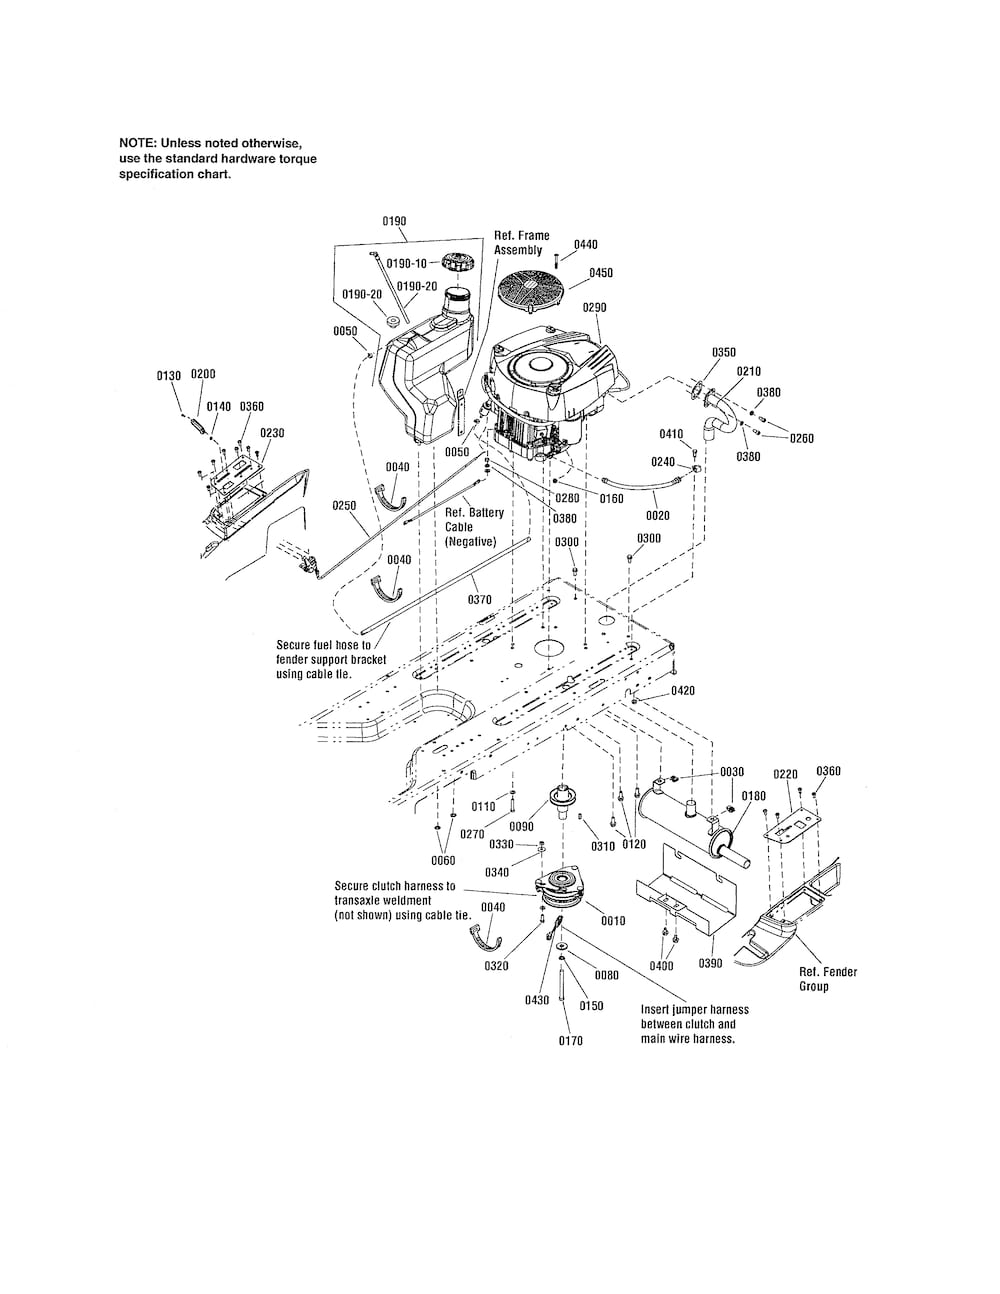 23 Hp Vanguard Wiring Diagram Onan 16 HP Wiring Diagram